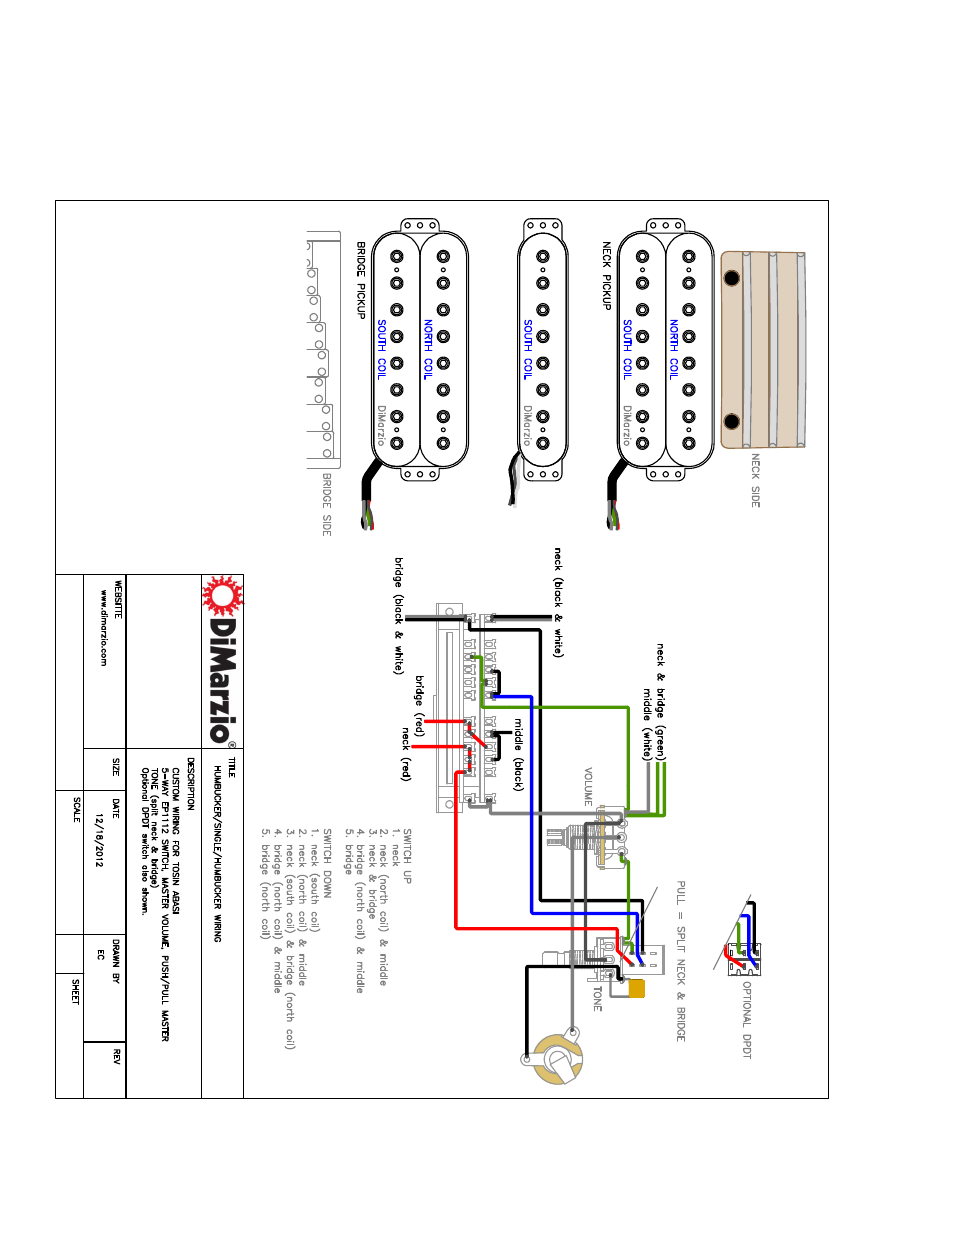 ibanez rg 550 wiring diagram ibanez rg body wiring diagram